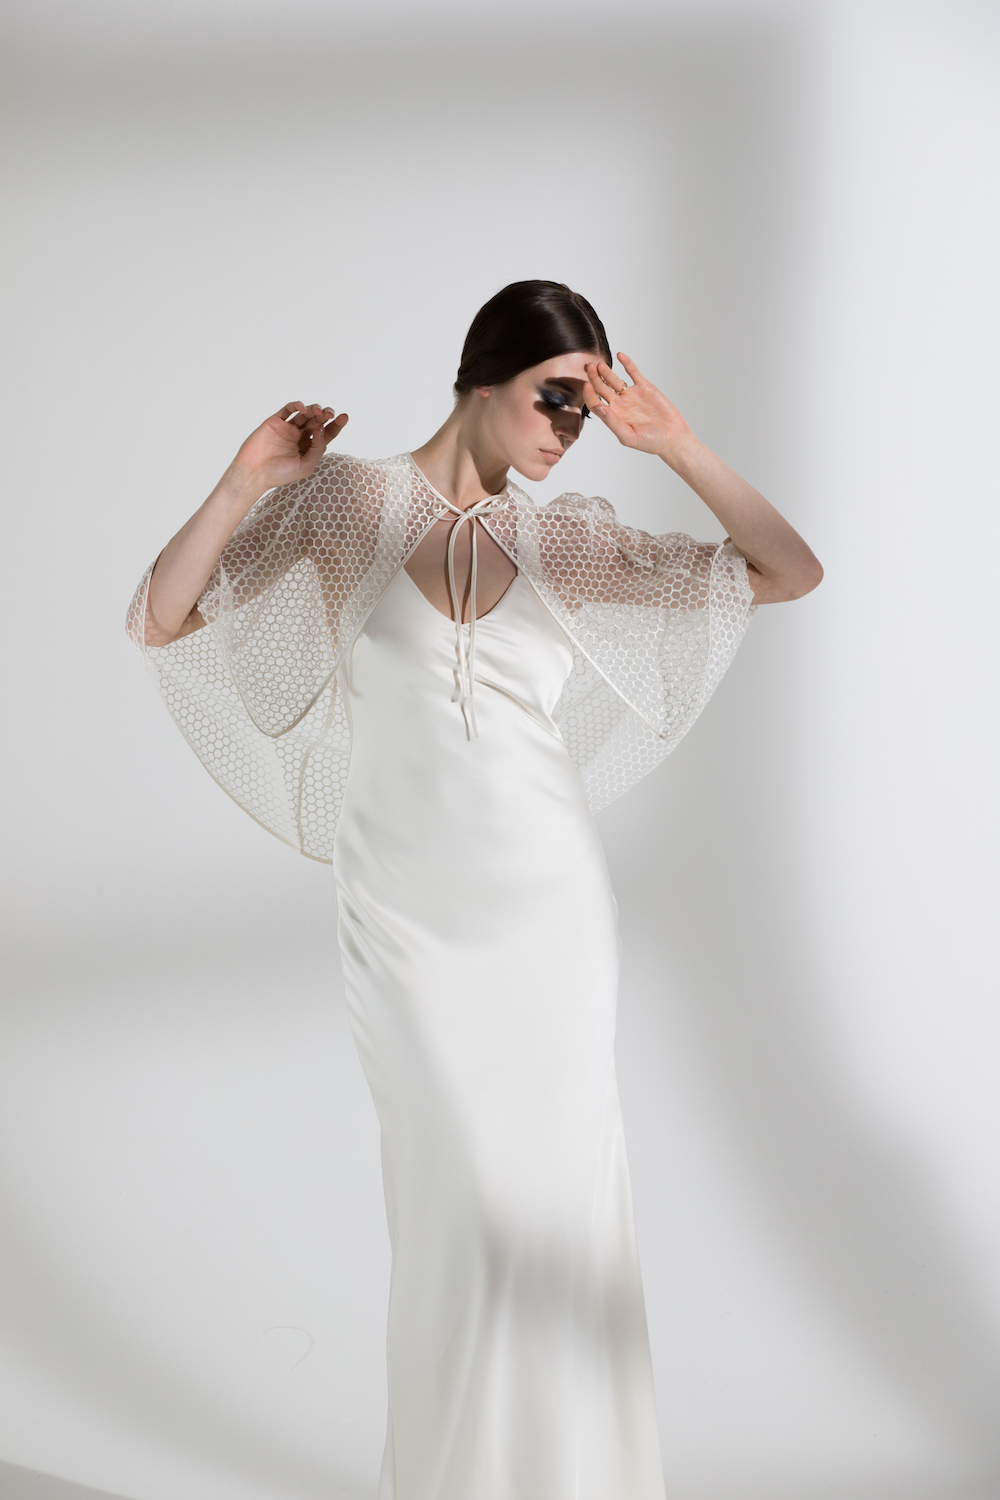 HONEYSUCKLE CAPE & JUNIPER DRESS | WEDDING DRESS BY HALFPENNY LONDON